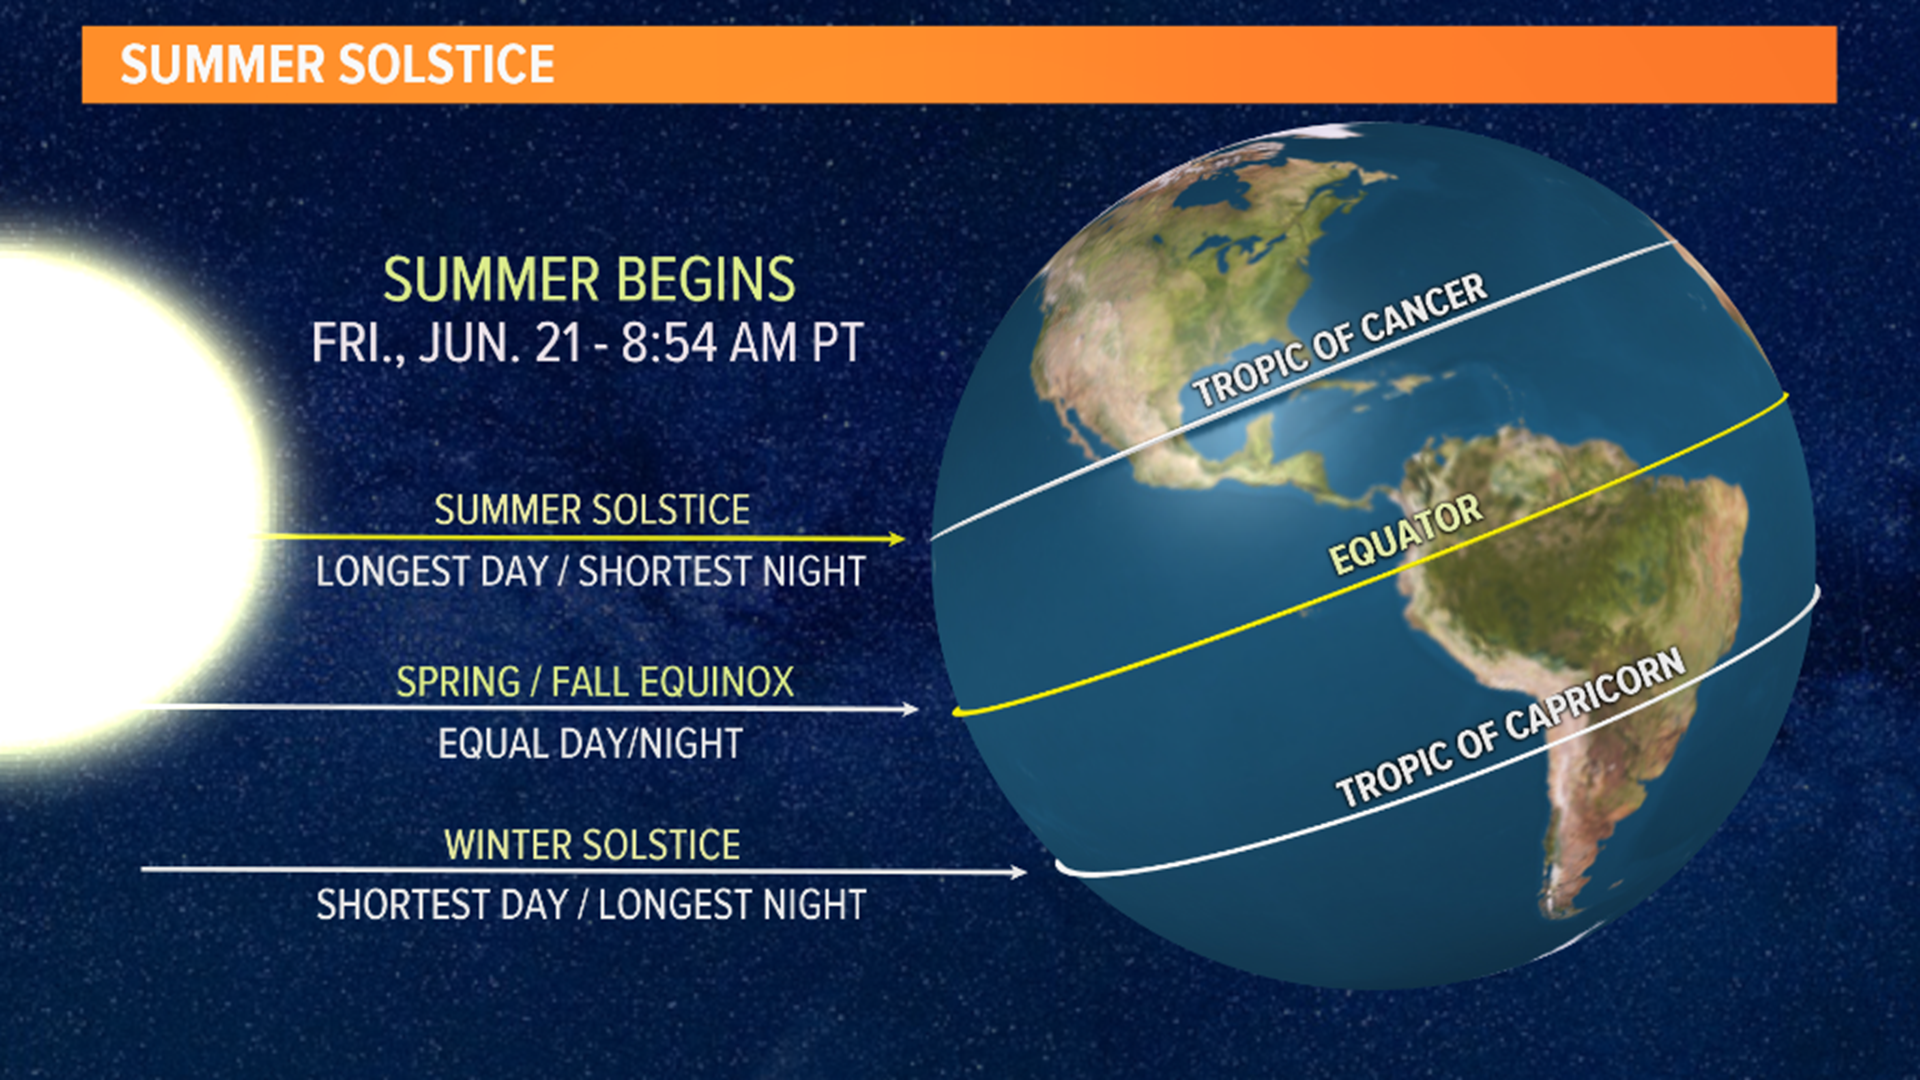 Summer has arrived. Here's what know about the solstice ...